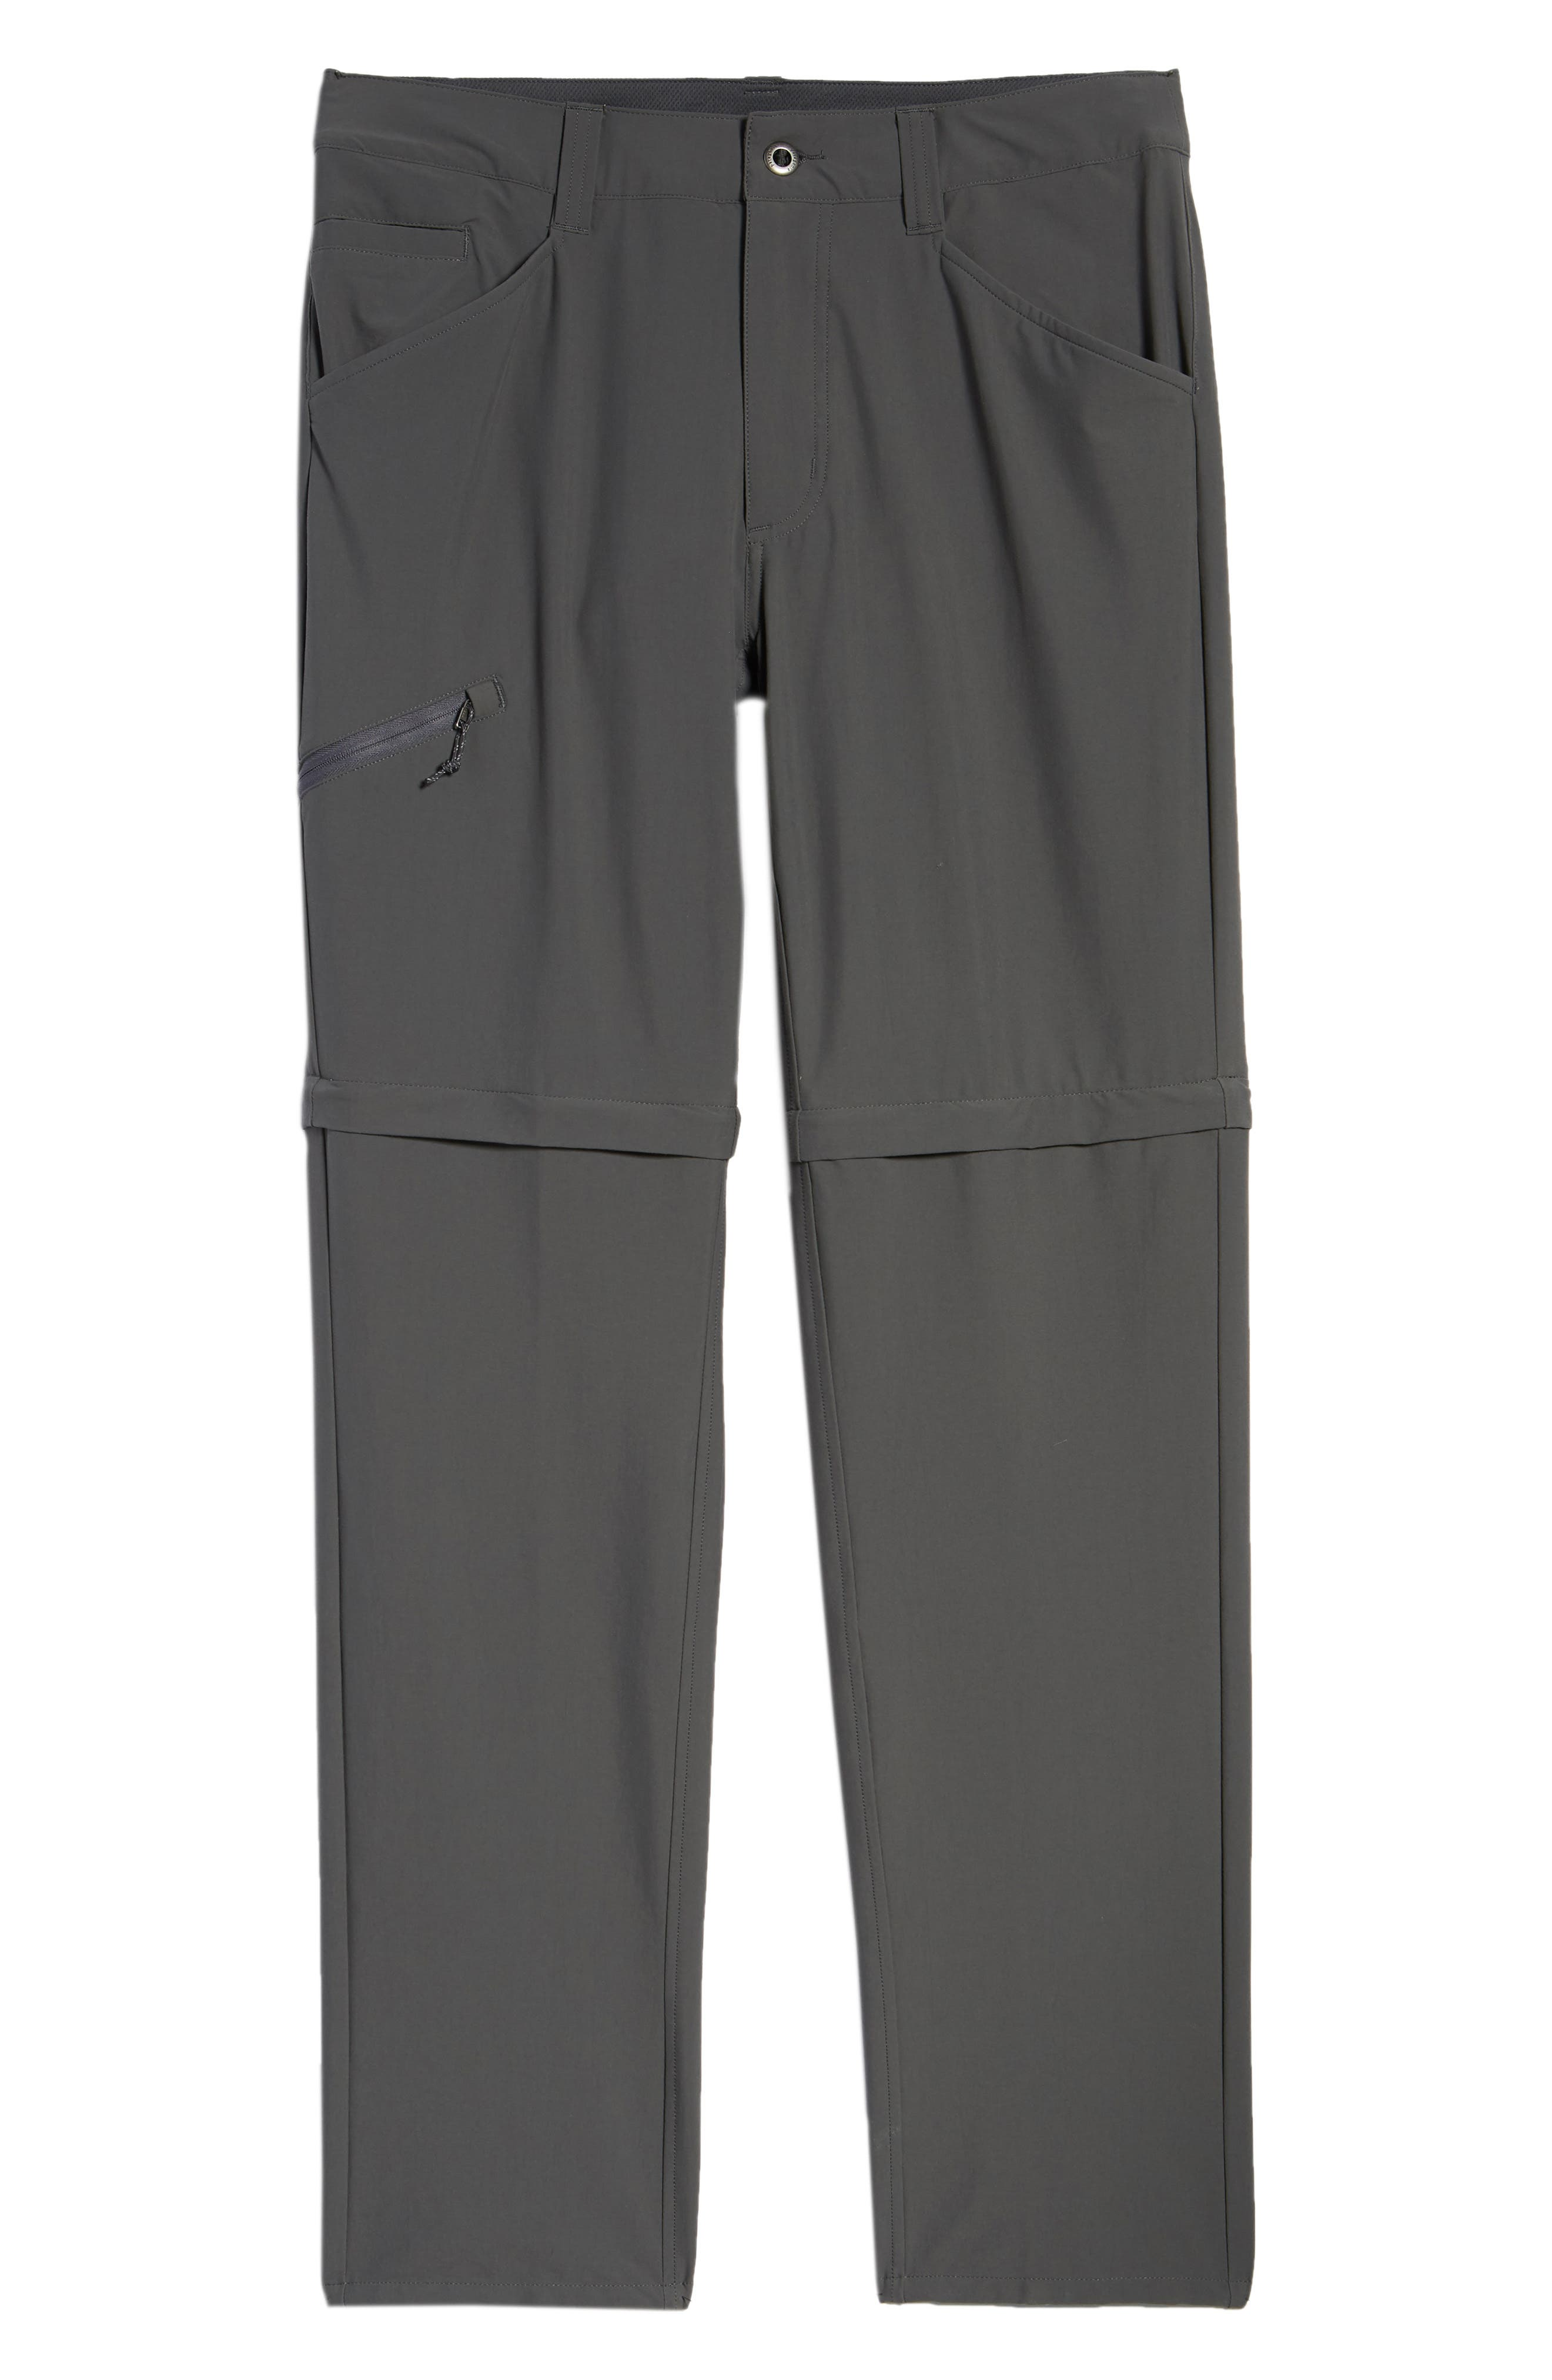 M's Quandry Convertible Pants,                             Alternate thumbnail 6, color,                             FORGE GREY